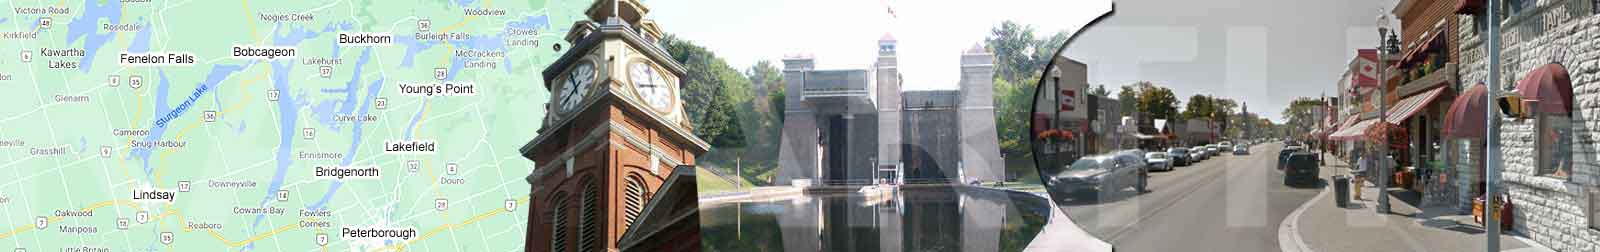 Kawartha Lakes' Bobcaygeon at Ontario Sturgeon Lake and Pigeon Lake at  The Trent Severn Waterway, Lock 32